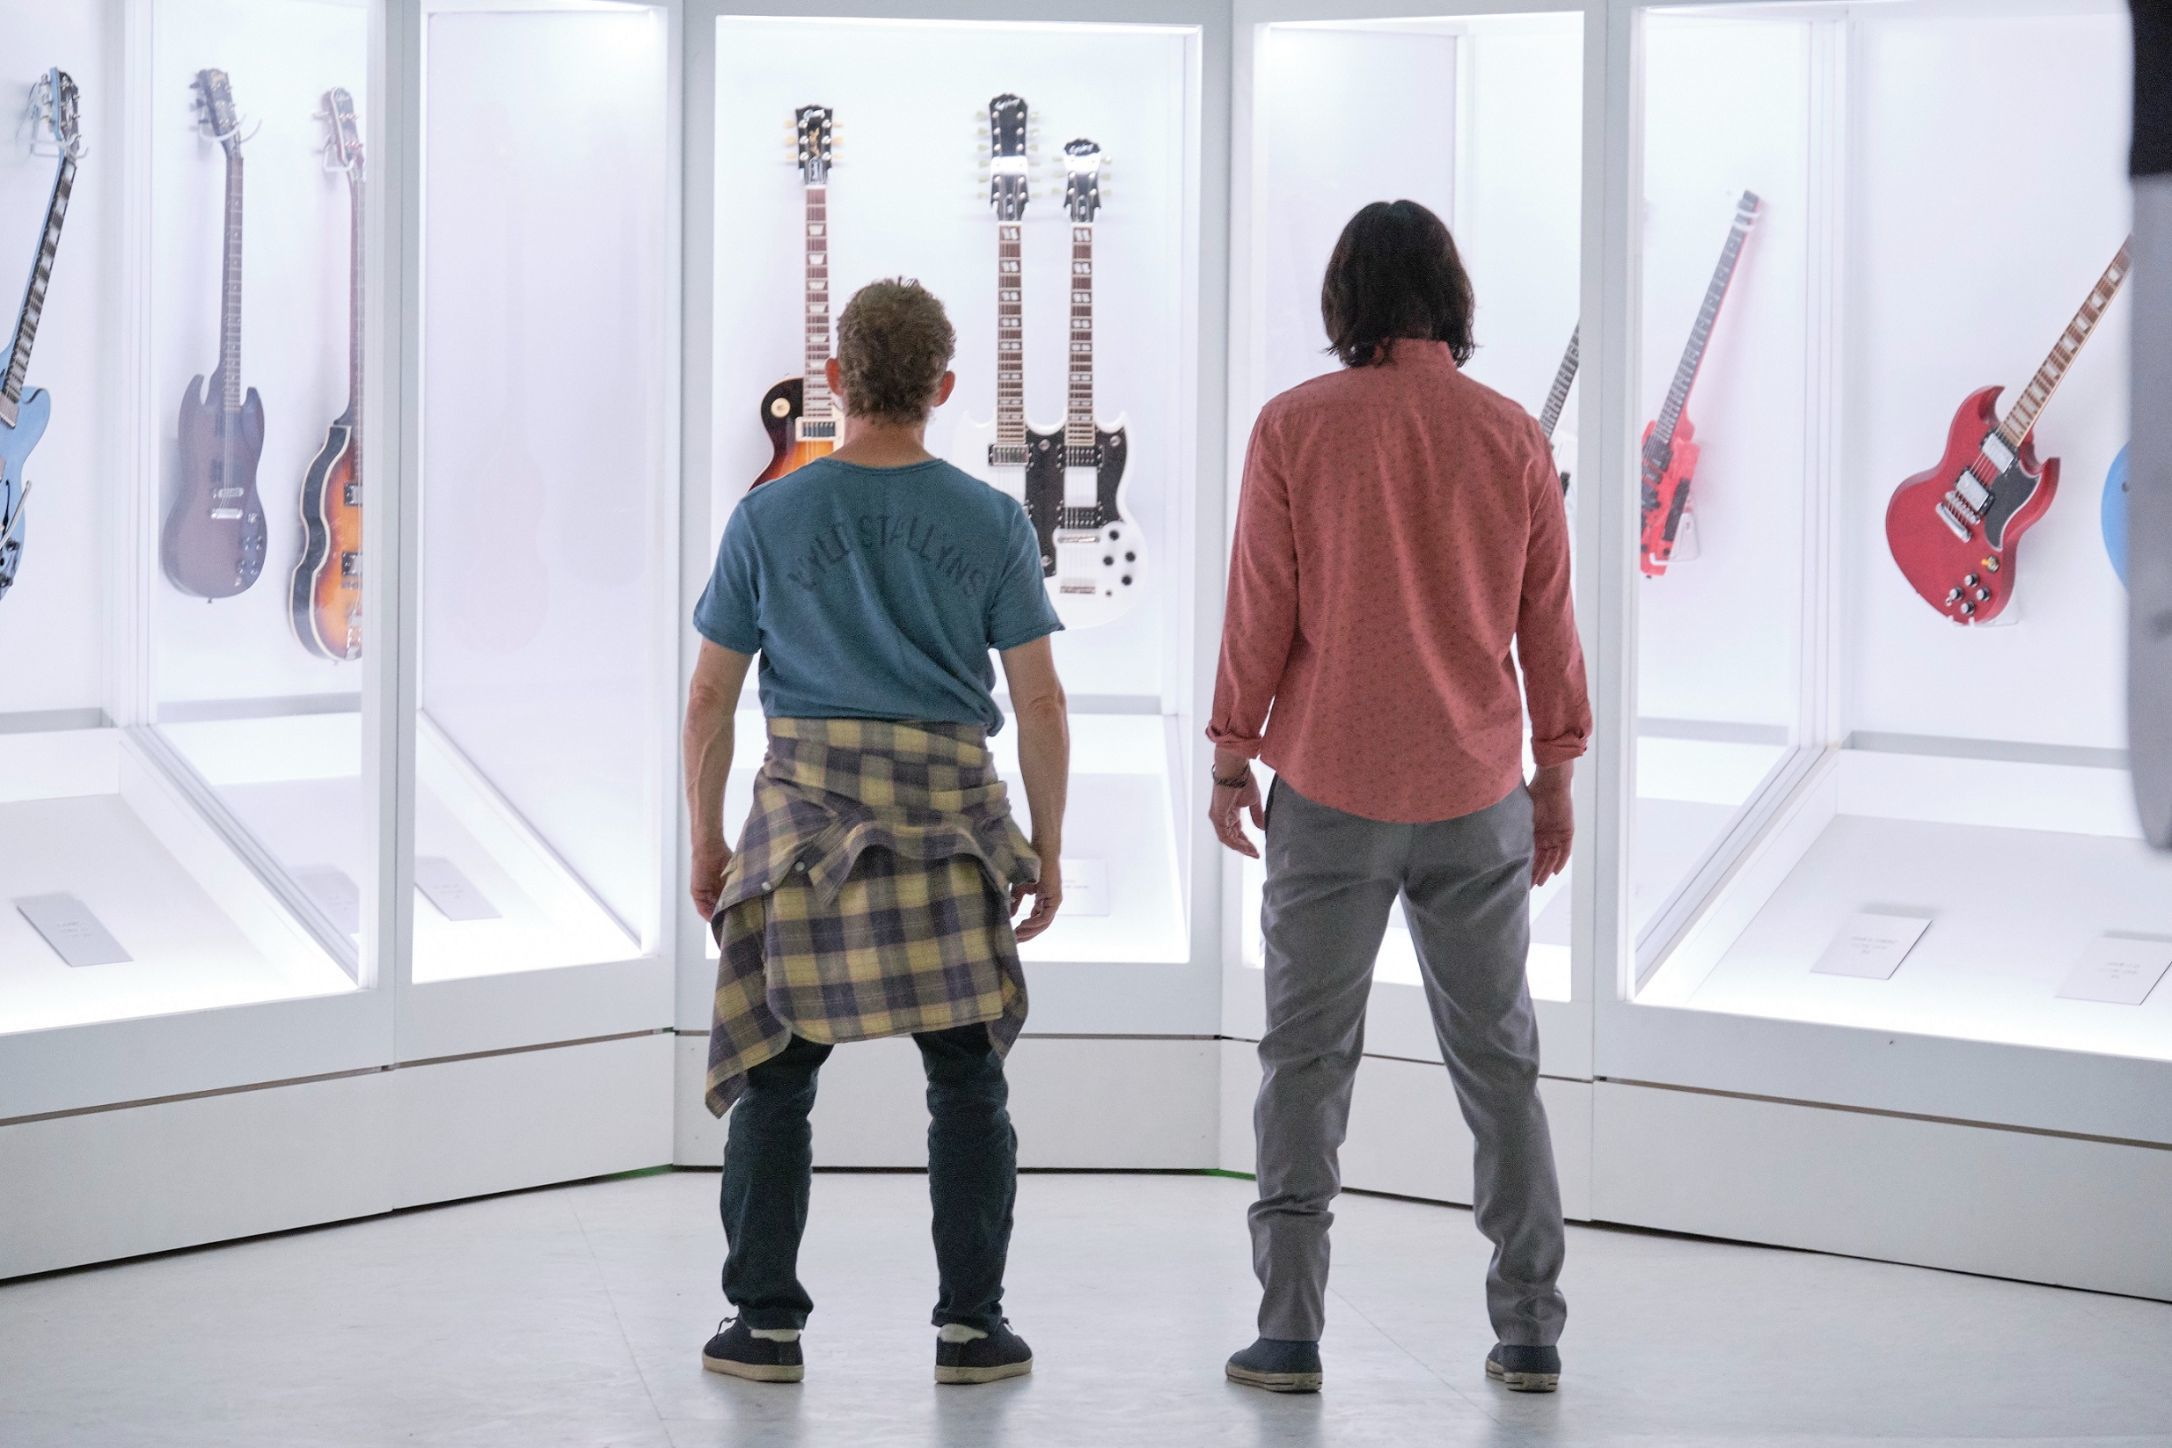 (C)2020 Bill & Ted FTM, LLC. All rights reserved.